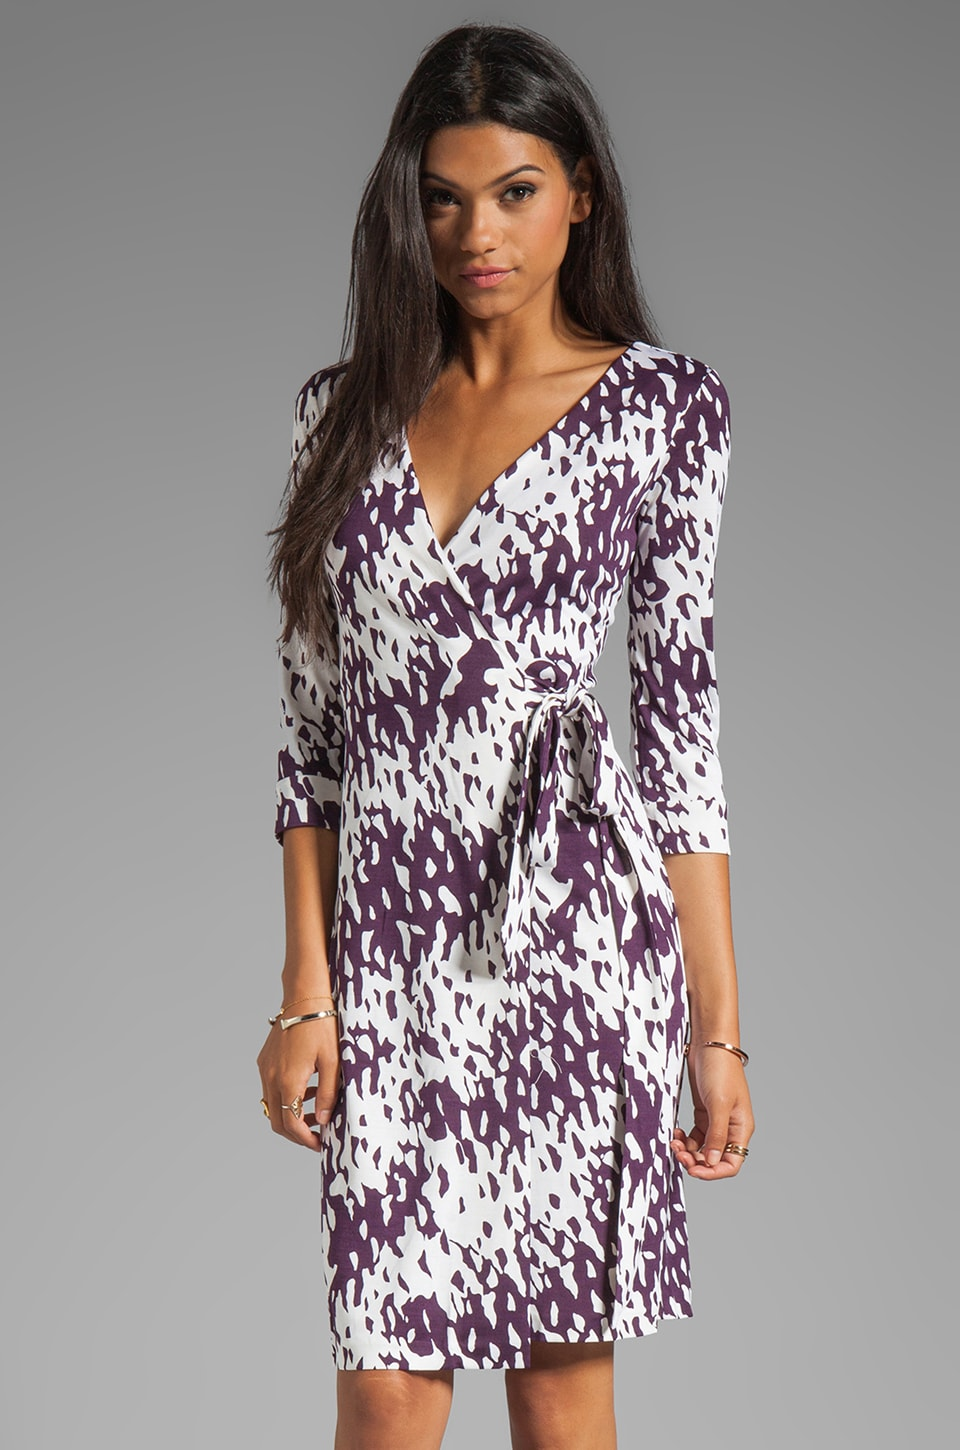 Diane von Furstenberg New Julian Two Dress in Shadow Forest Purple